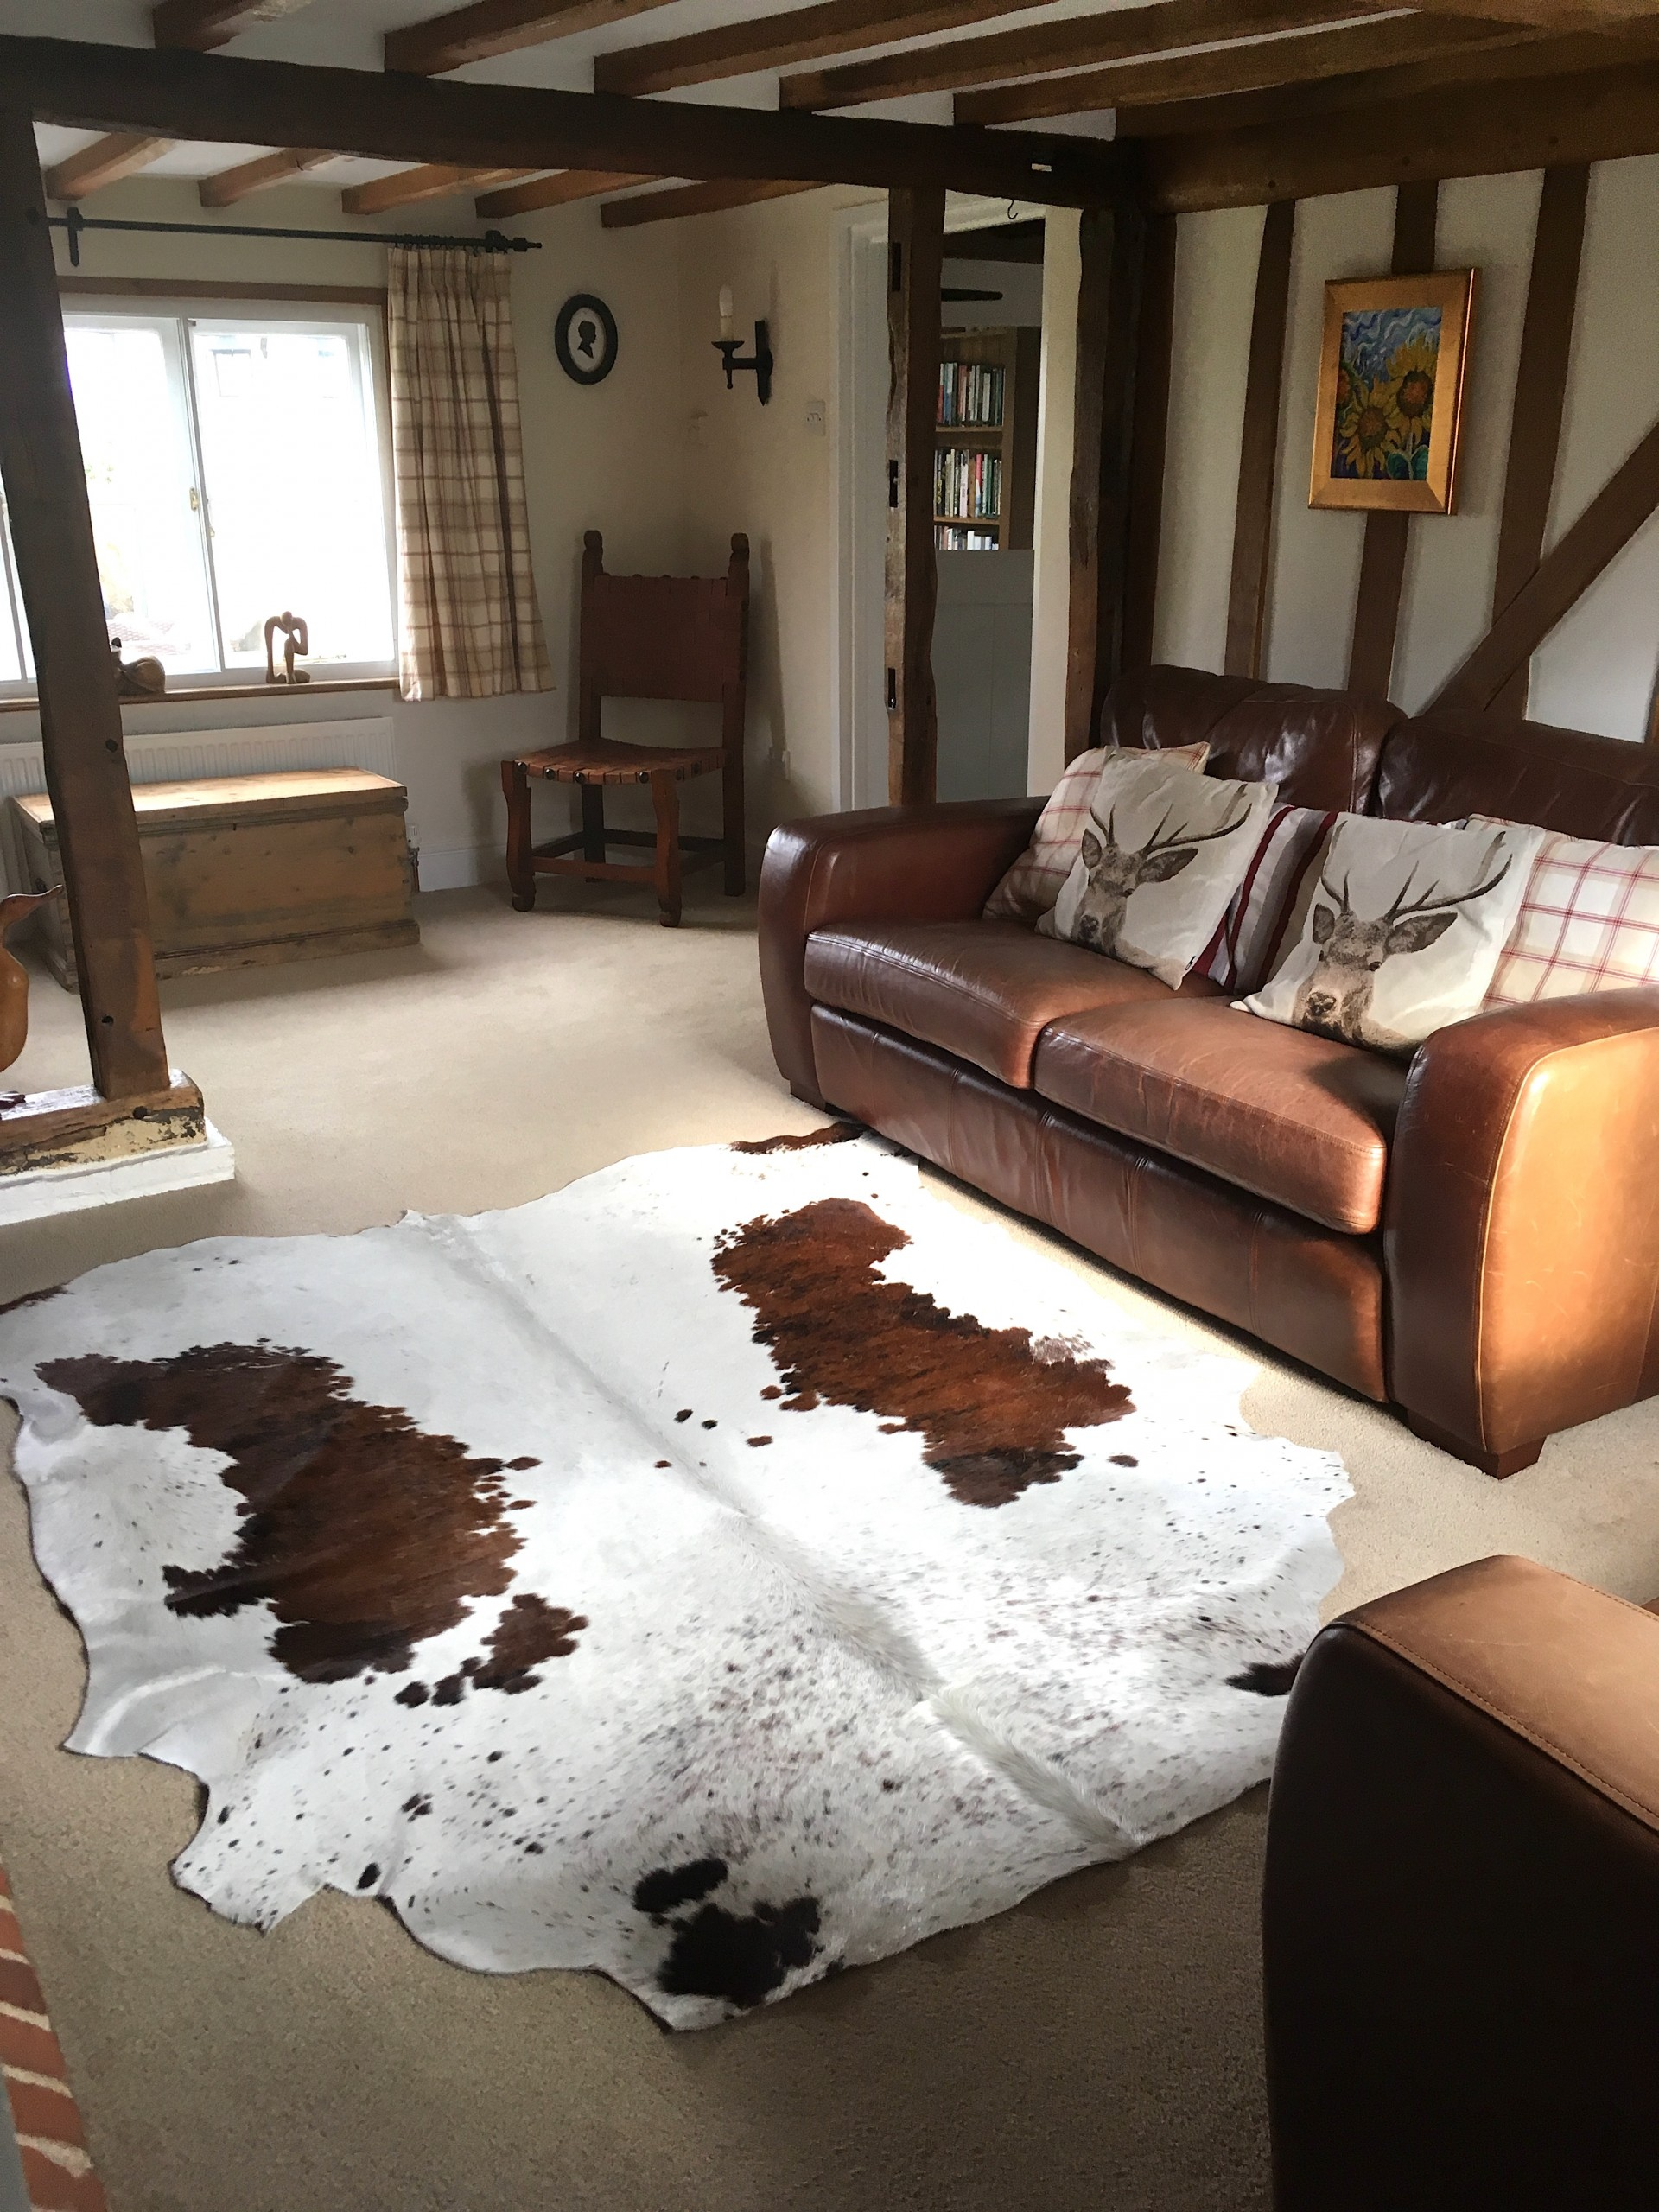 Nguni cowhide rugs, brown and white rugs, cowhides, skins, animal print, cowhide, luxury interiors, home interiors, interior styling, soft furnishings, sustainable, living room decor, floor art